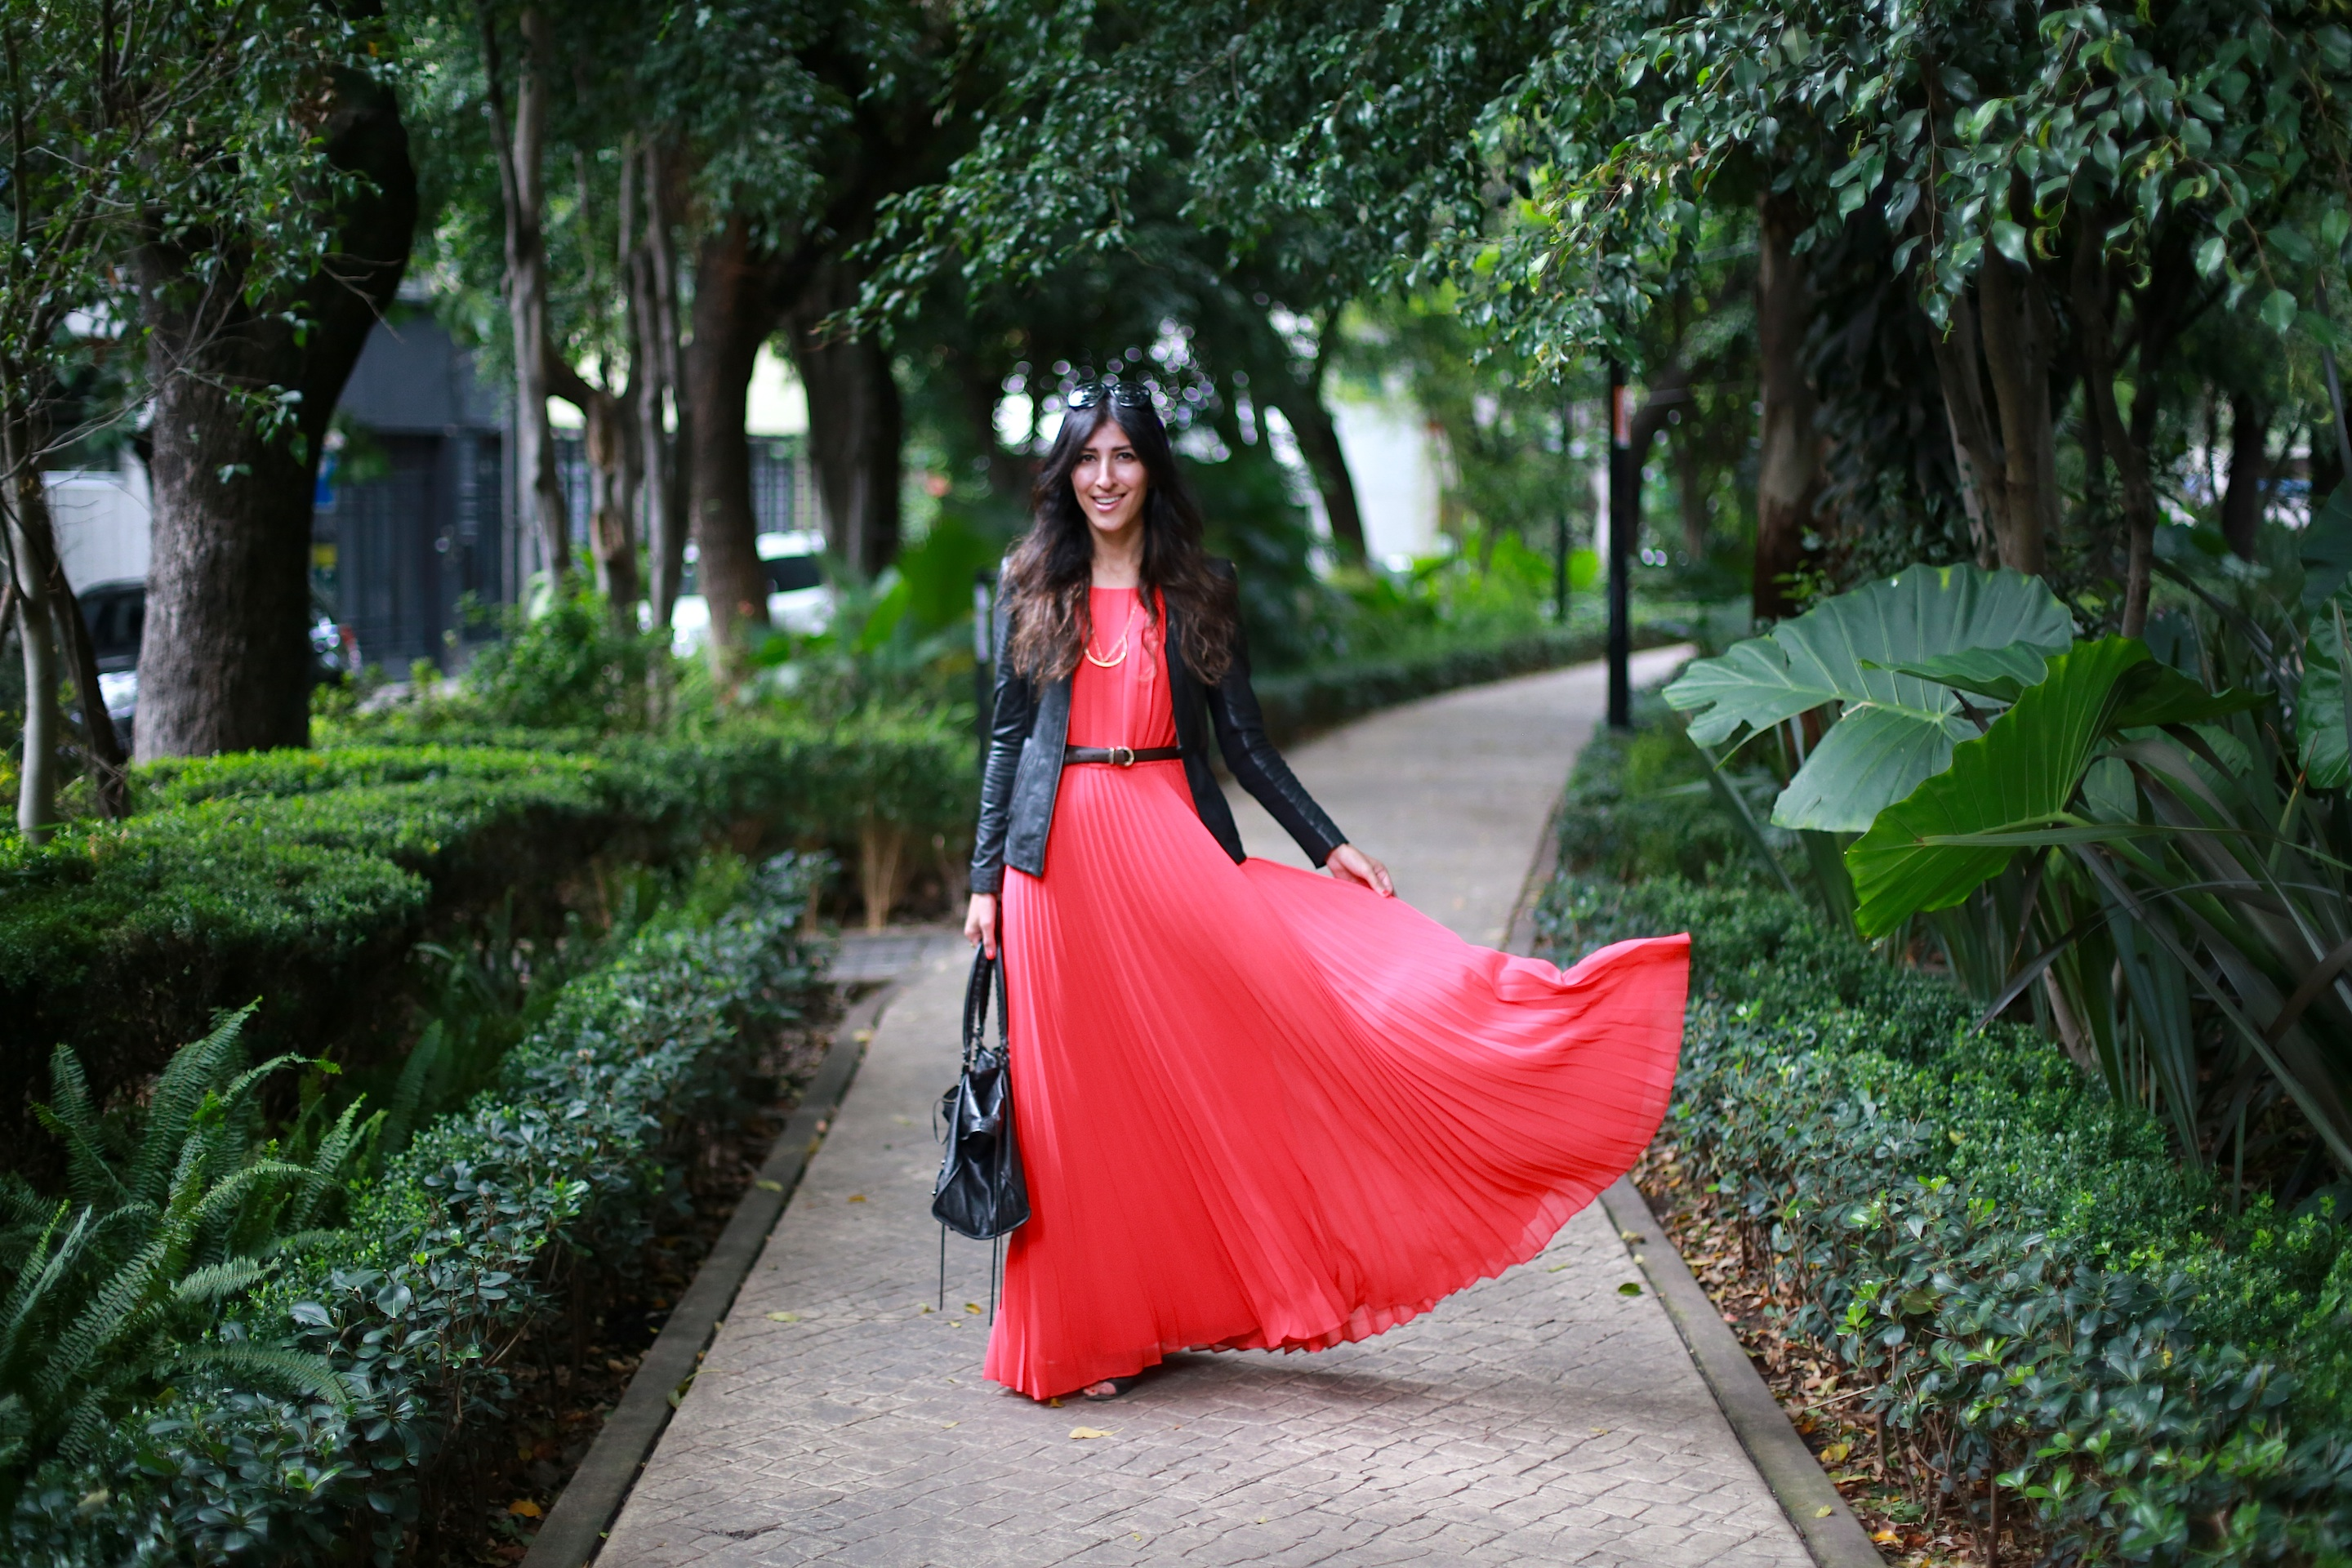 Maxi skirts or dresses with full skirts are my favorite pieces to partner with this jacket!